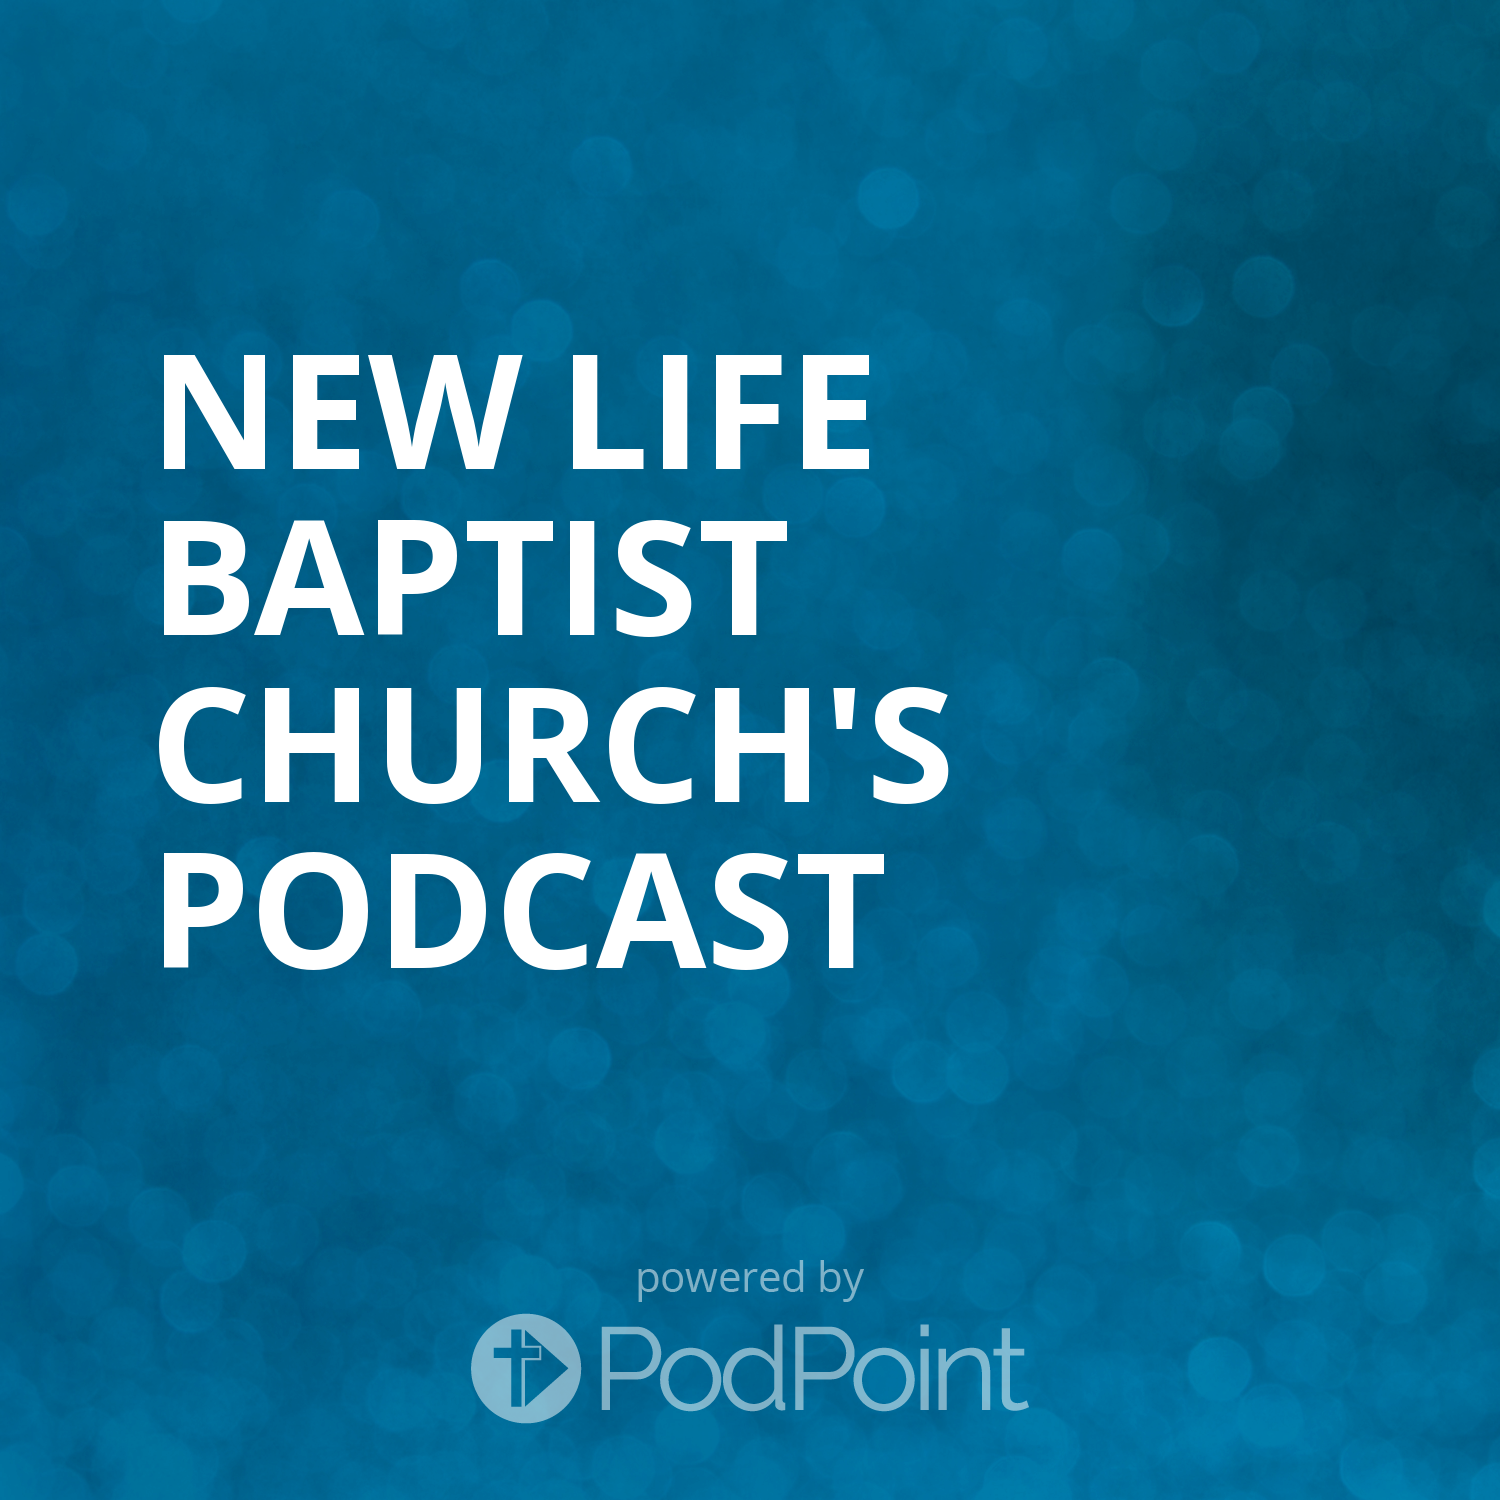 New Life Baptist Church's Podcast